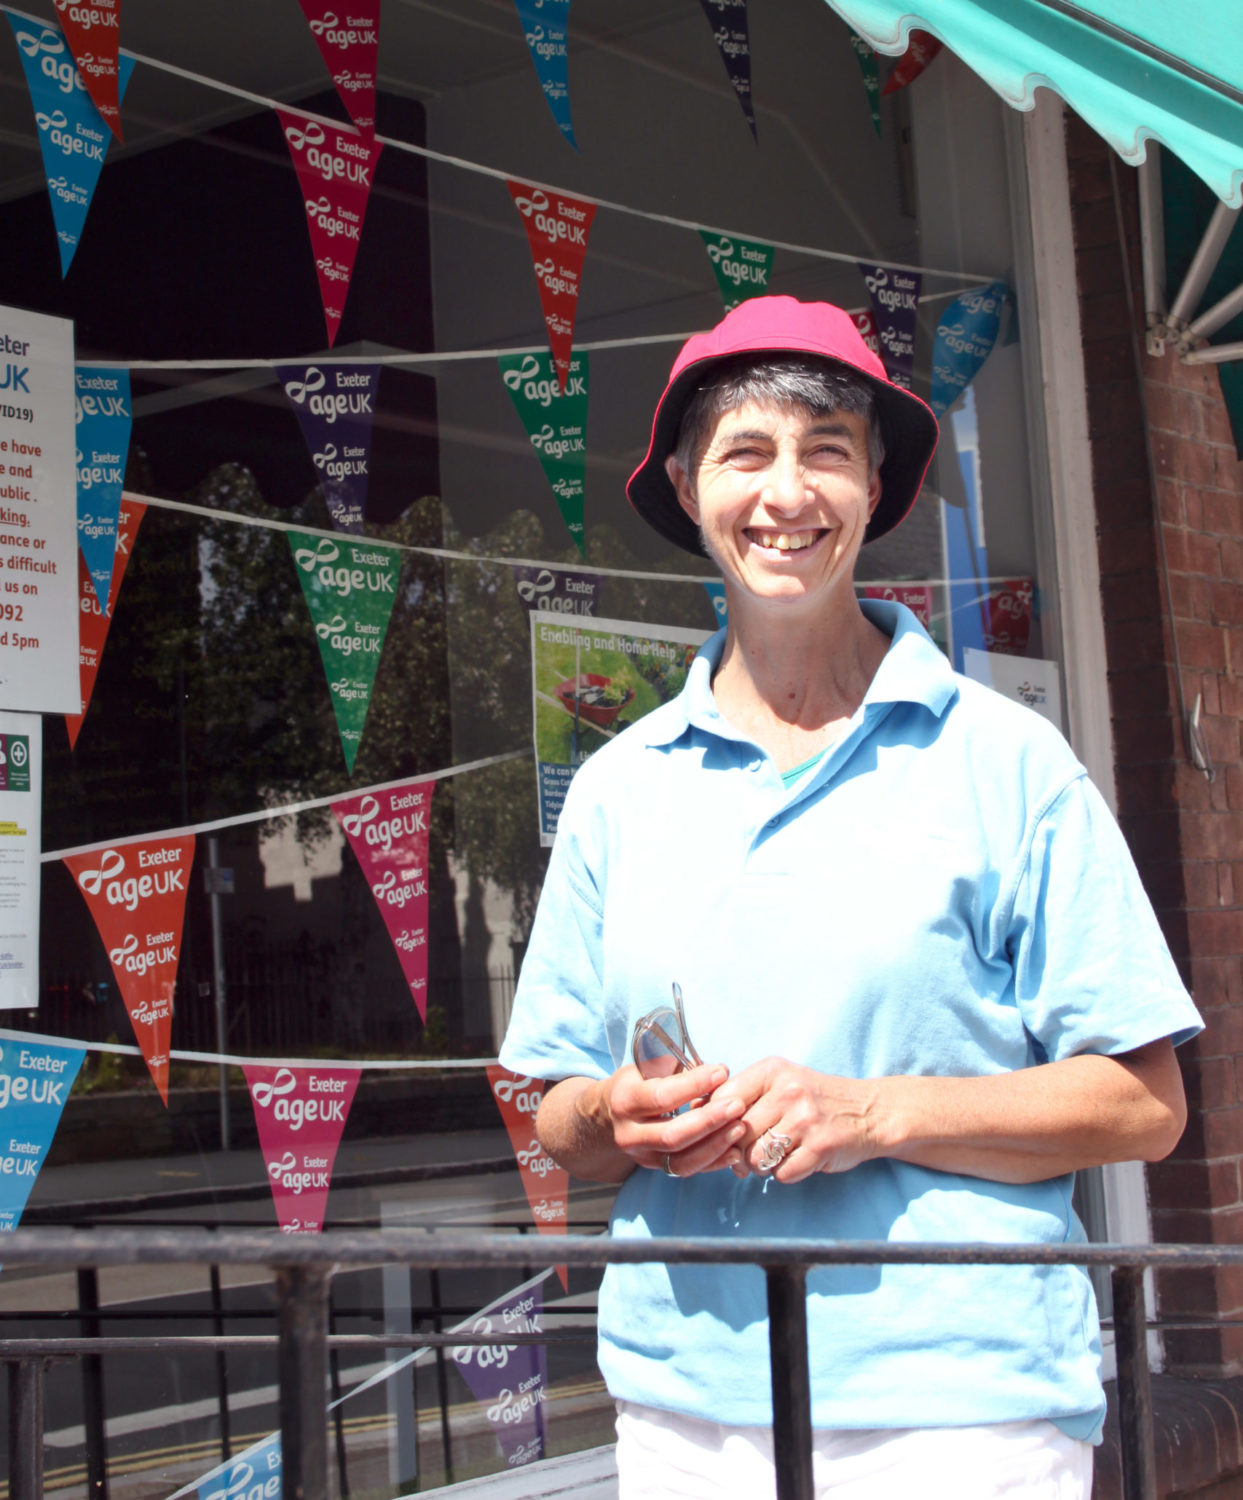 Jess Cohen outside a building with bunting flying